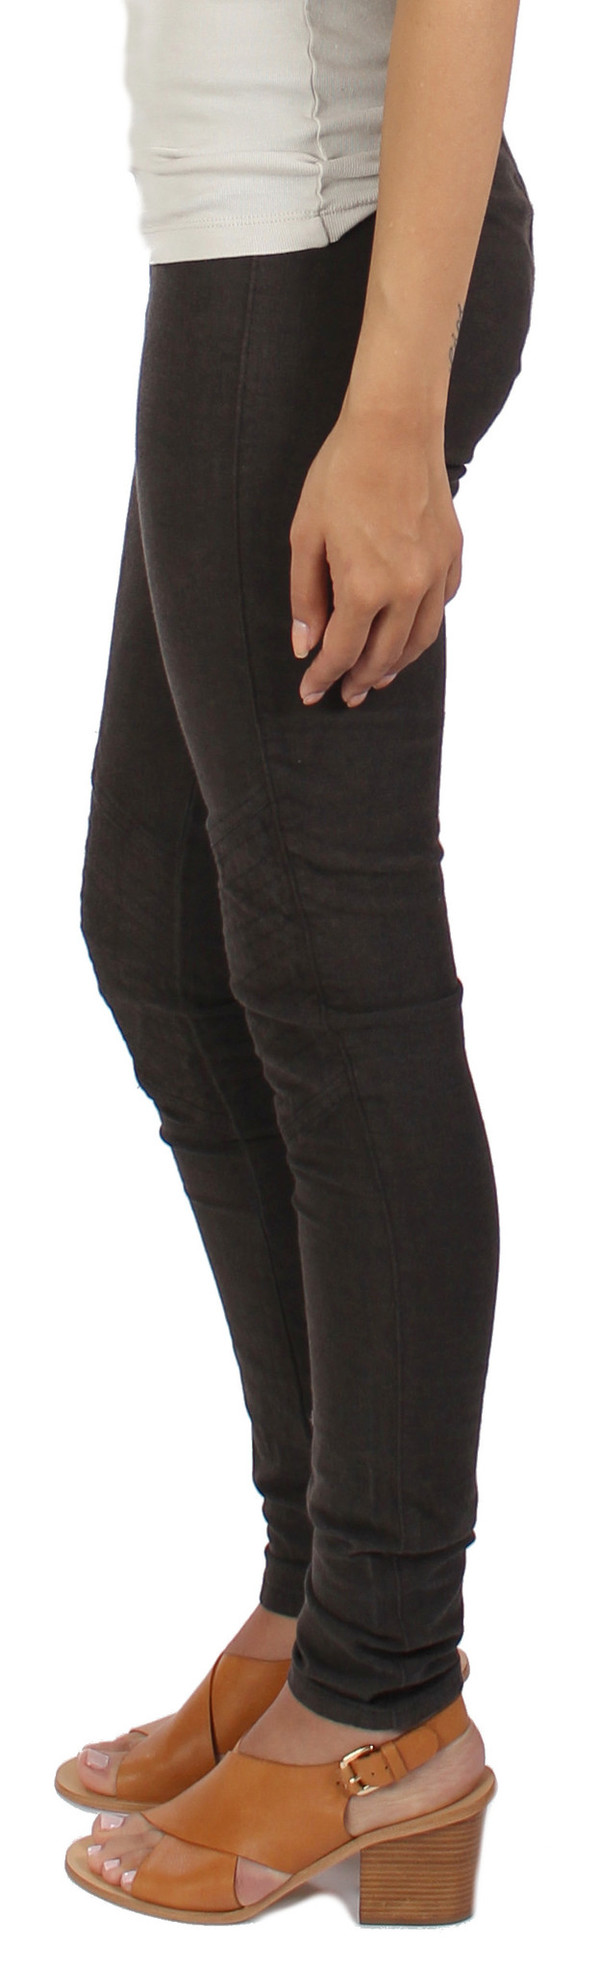 Smoothermoto Legging